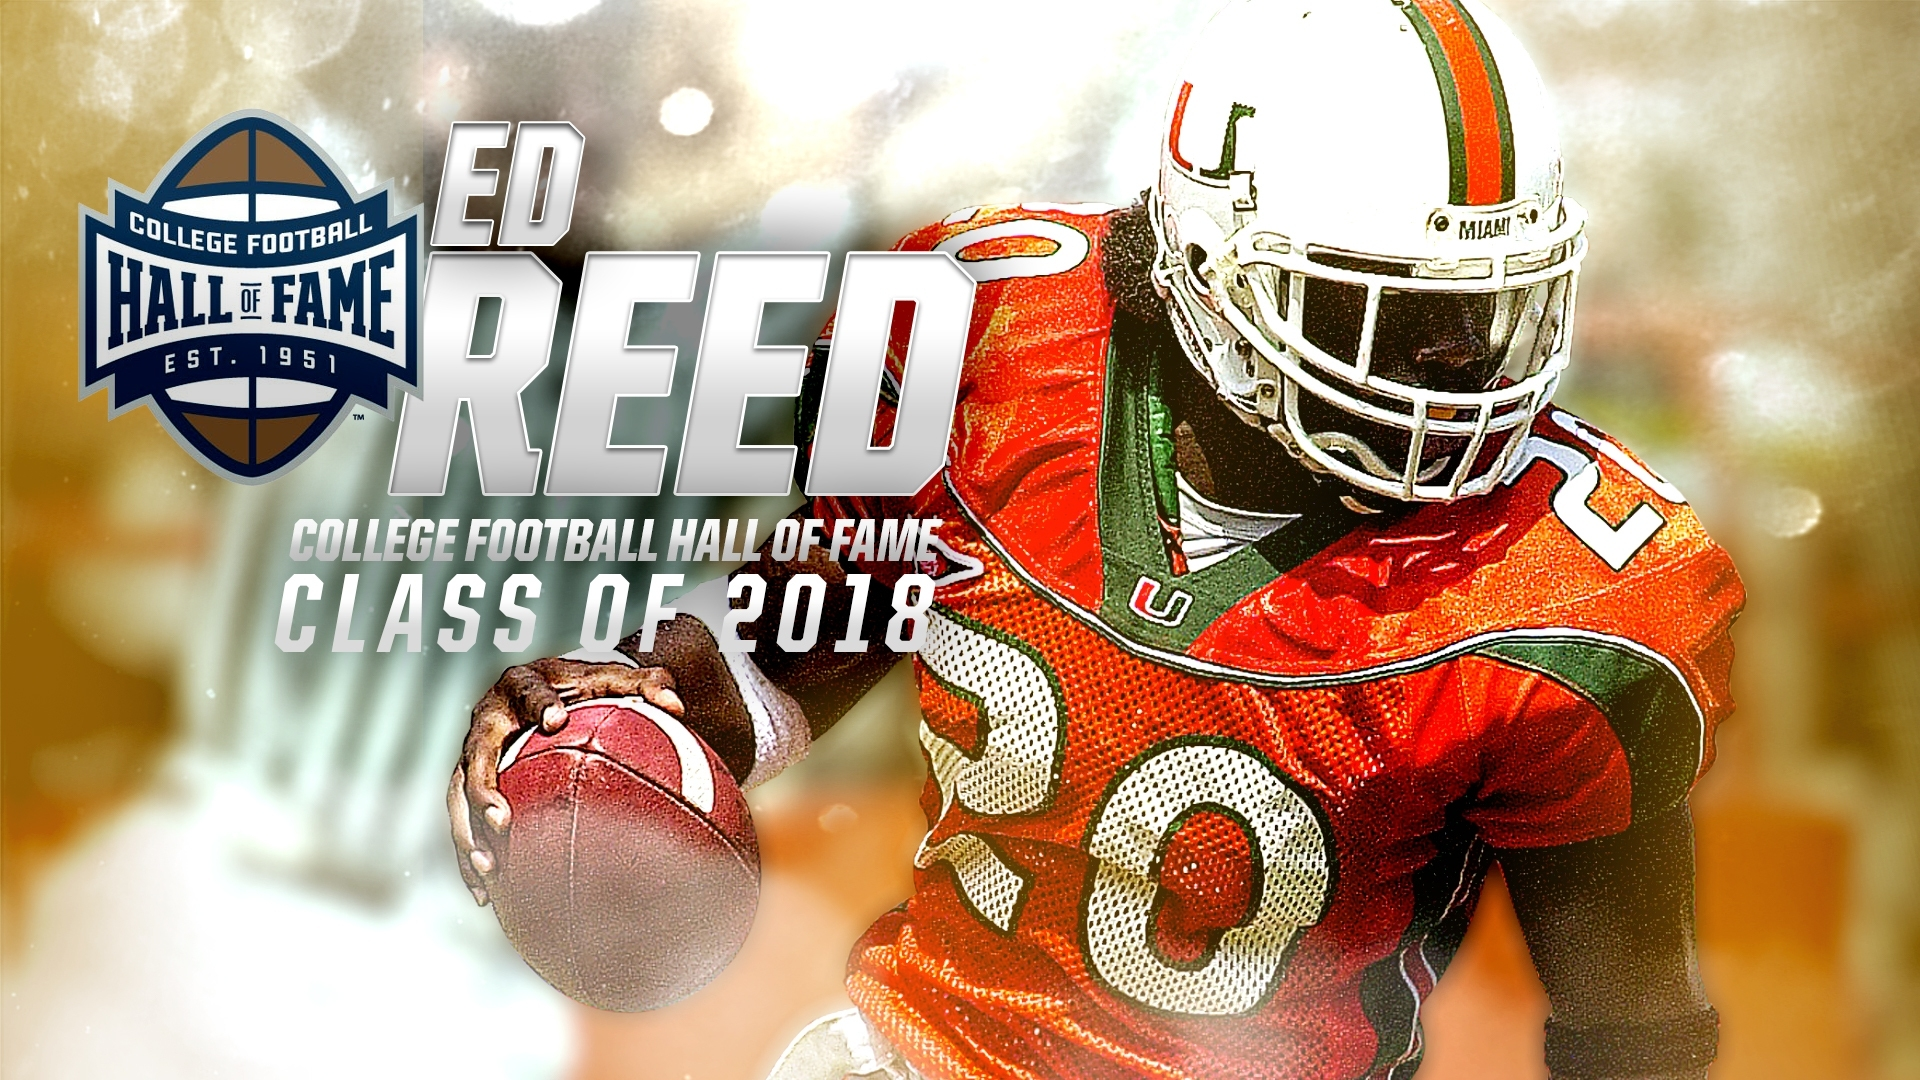 Ed Reed Selected To College Football Hall Of Fame in Miami Hurricanes With Super Bowl Rings